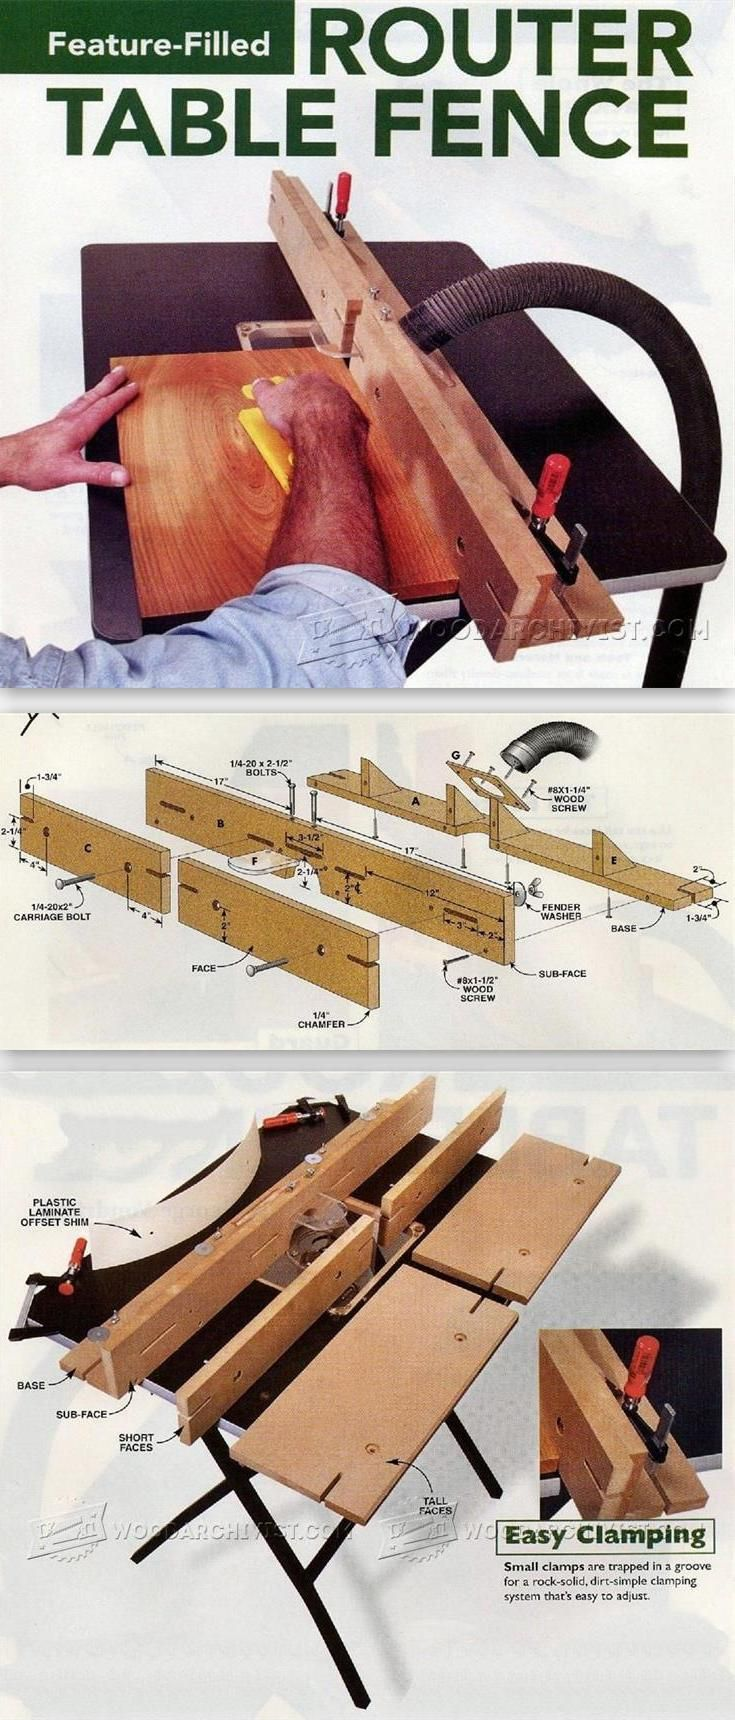 28 Best Oberfrseprojekt Images On Pinterest Tools Woodworking Cr4 Blog Entry Diy Trailer Hitch Wiring Solutions Part 2 Router Table Fence